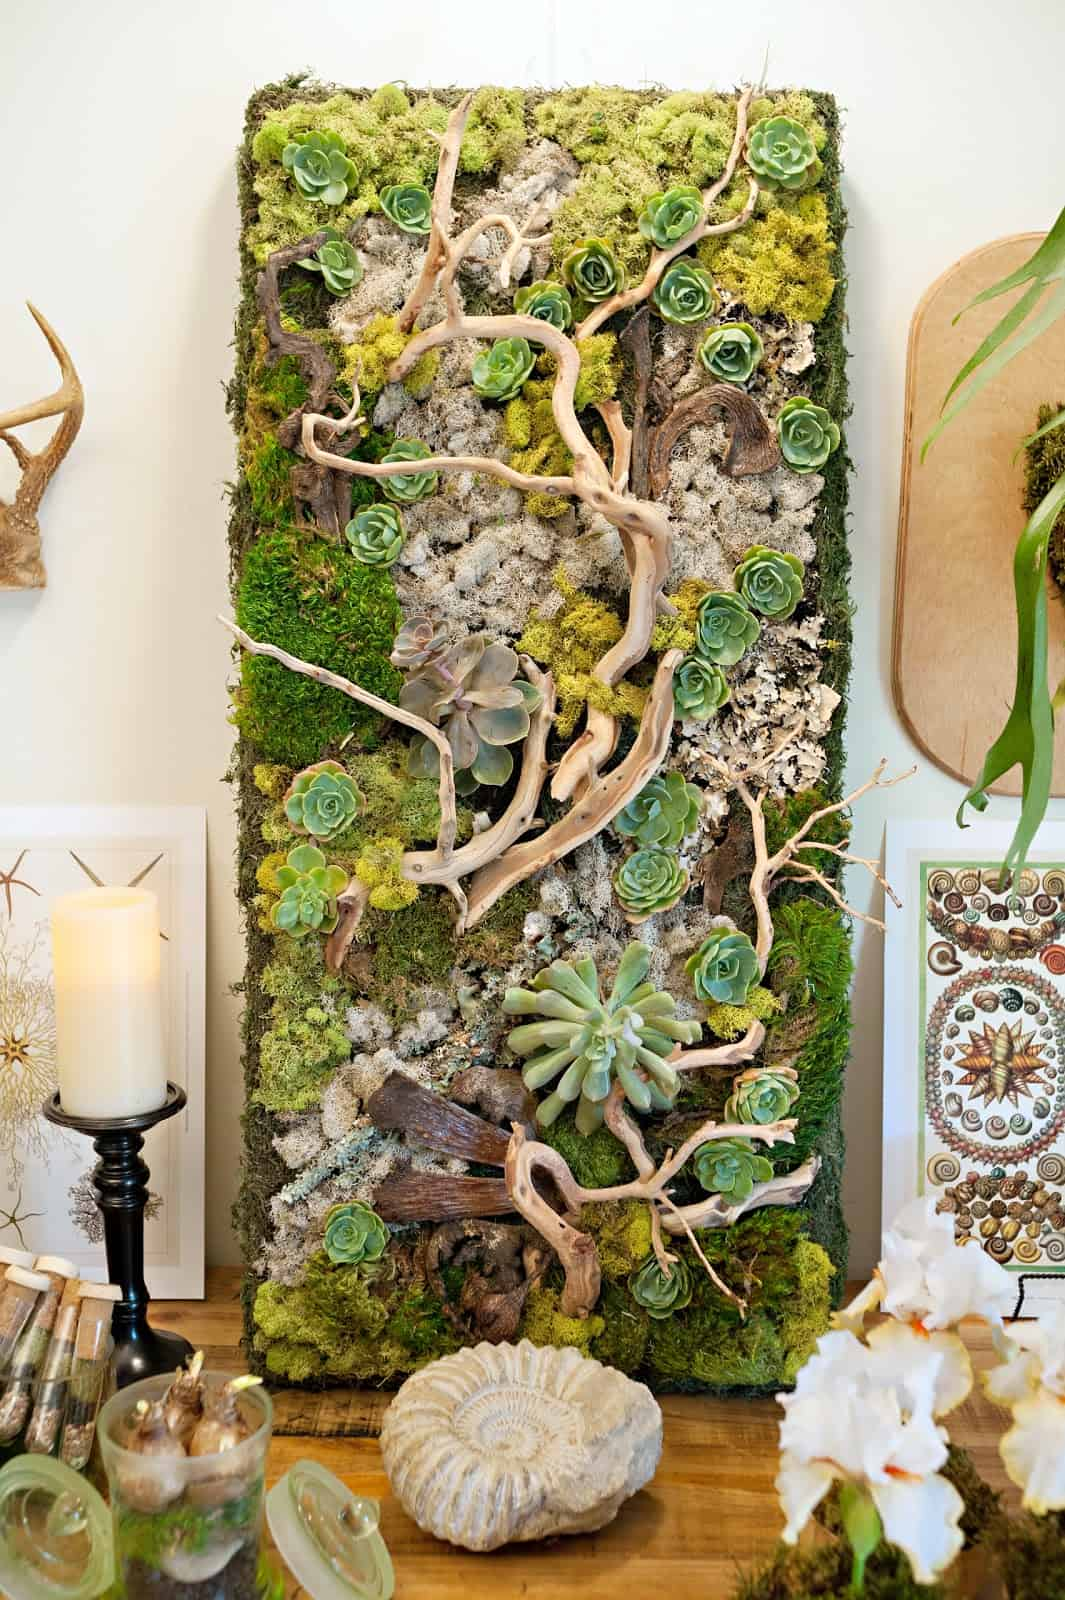 10-embellished-wall-panel-showcases-succulents-and-driftwood-vertical-garden-idea